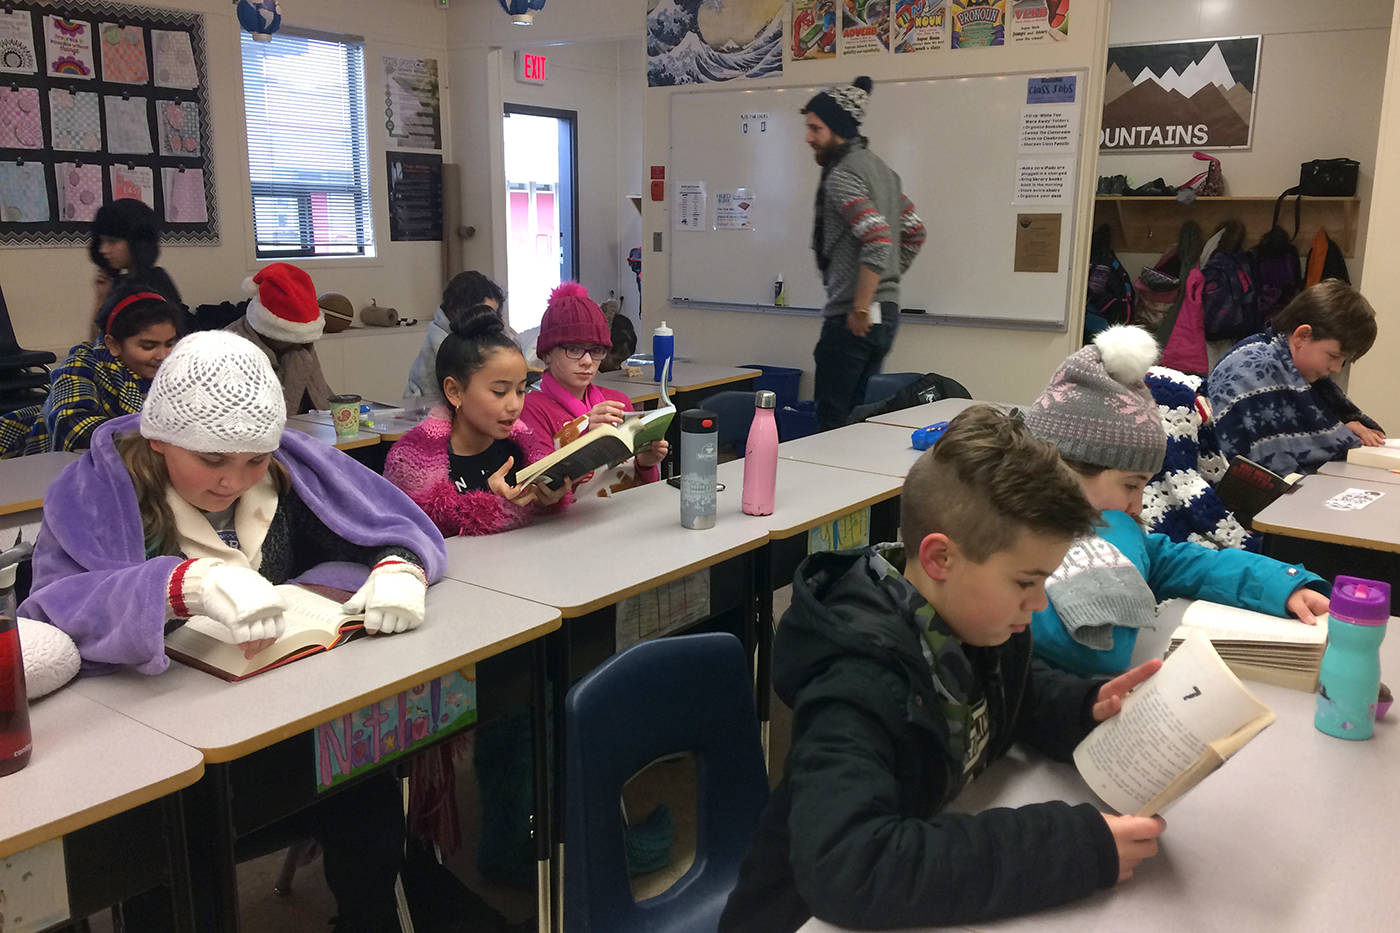 Students in Garrison Hodgins' Grade 5 class bundle up against the chilly air, as the heaters were turned off for the day.